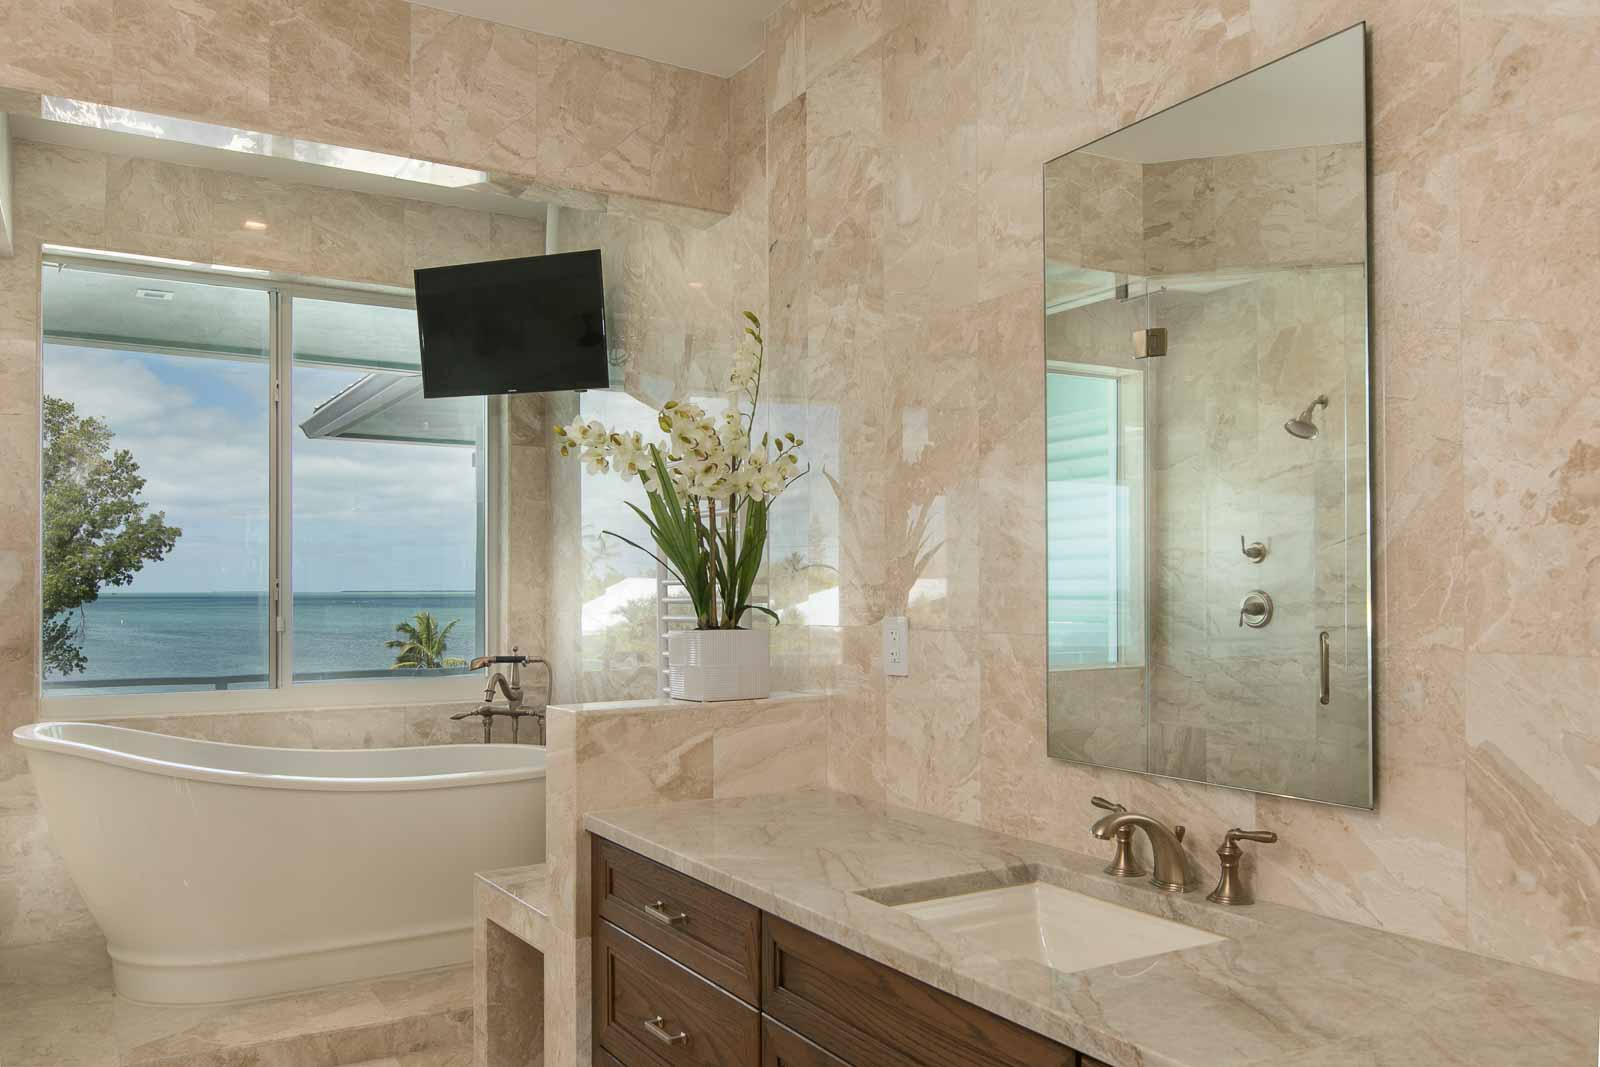 Taj Mahal Bathroom 2 1, Primestones® Granite, Quartz, Marble